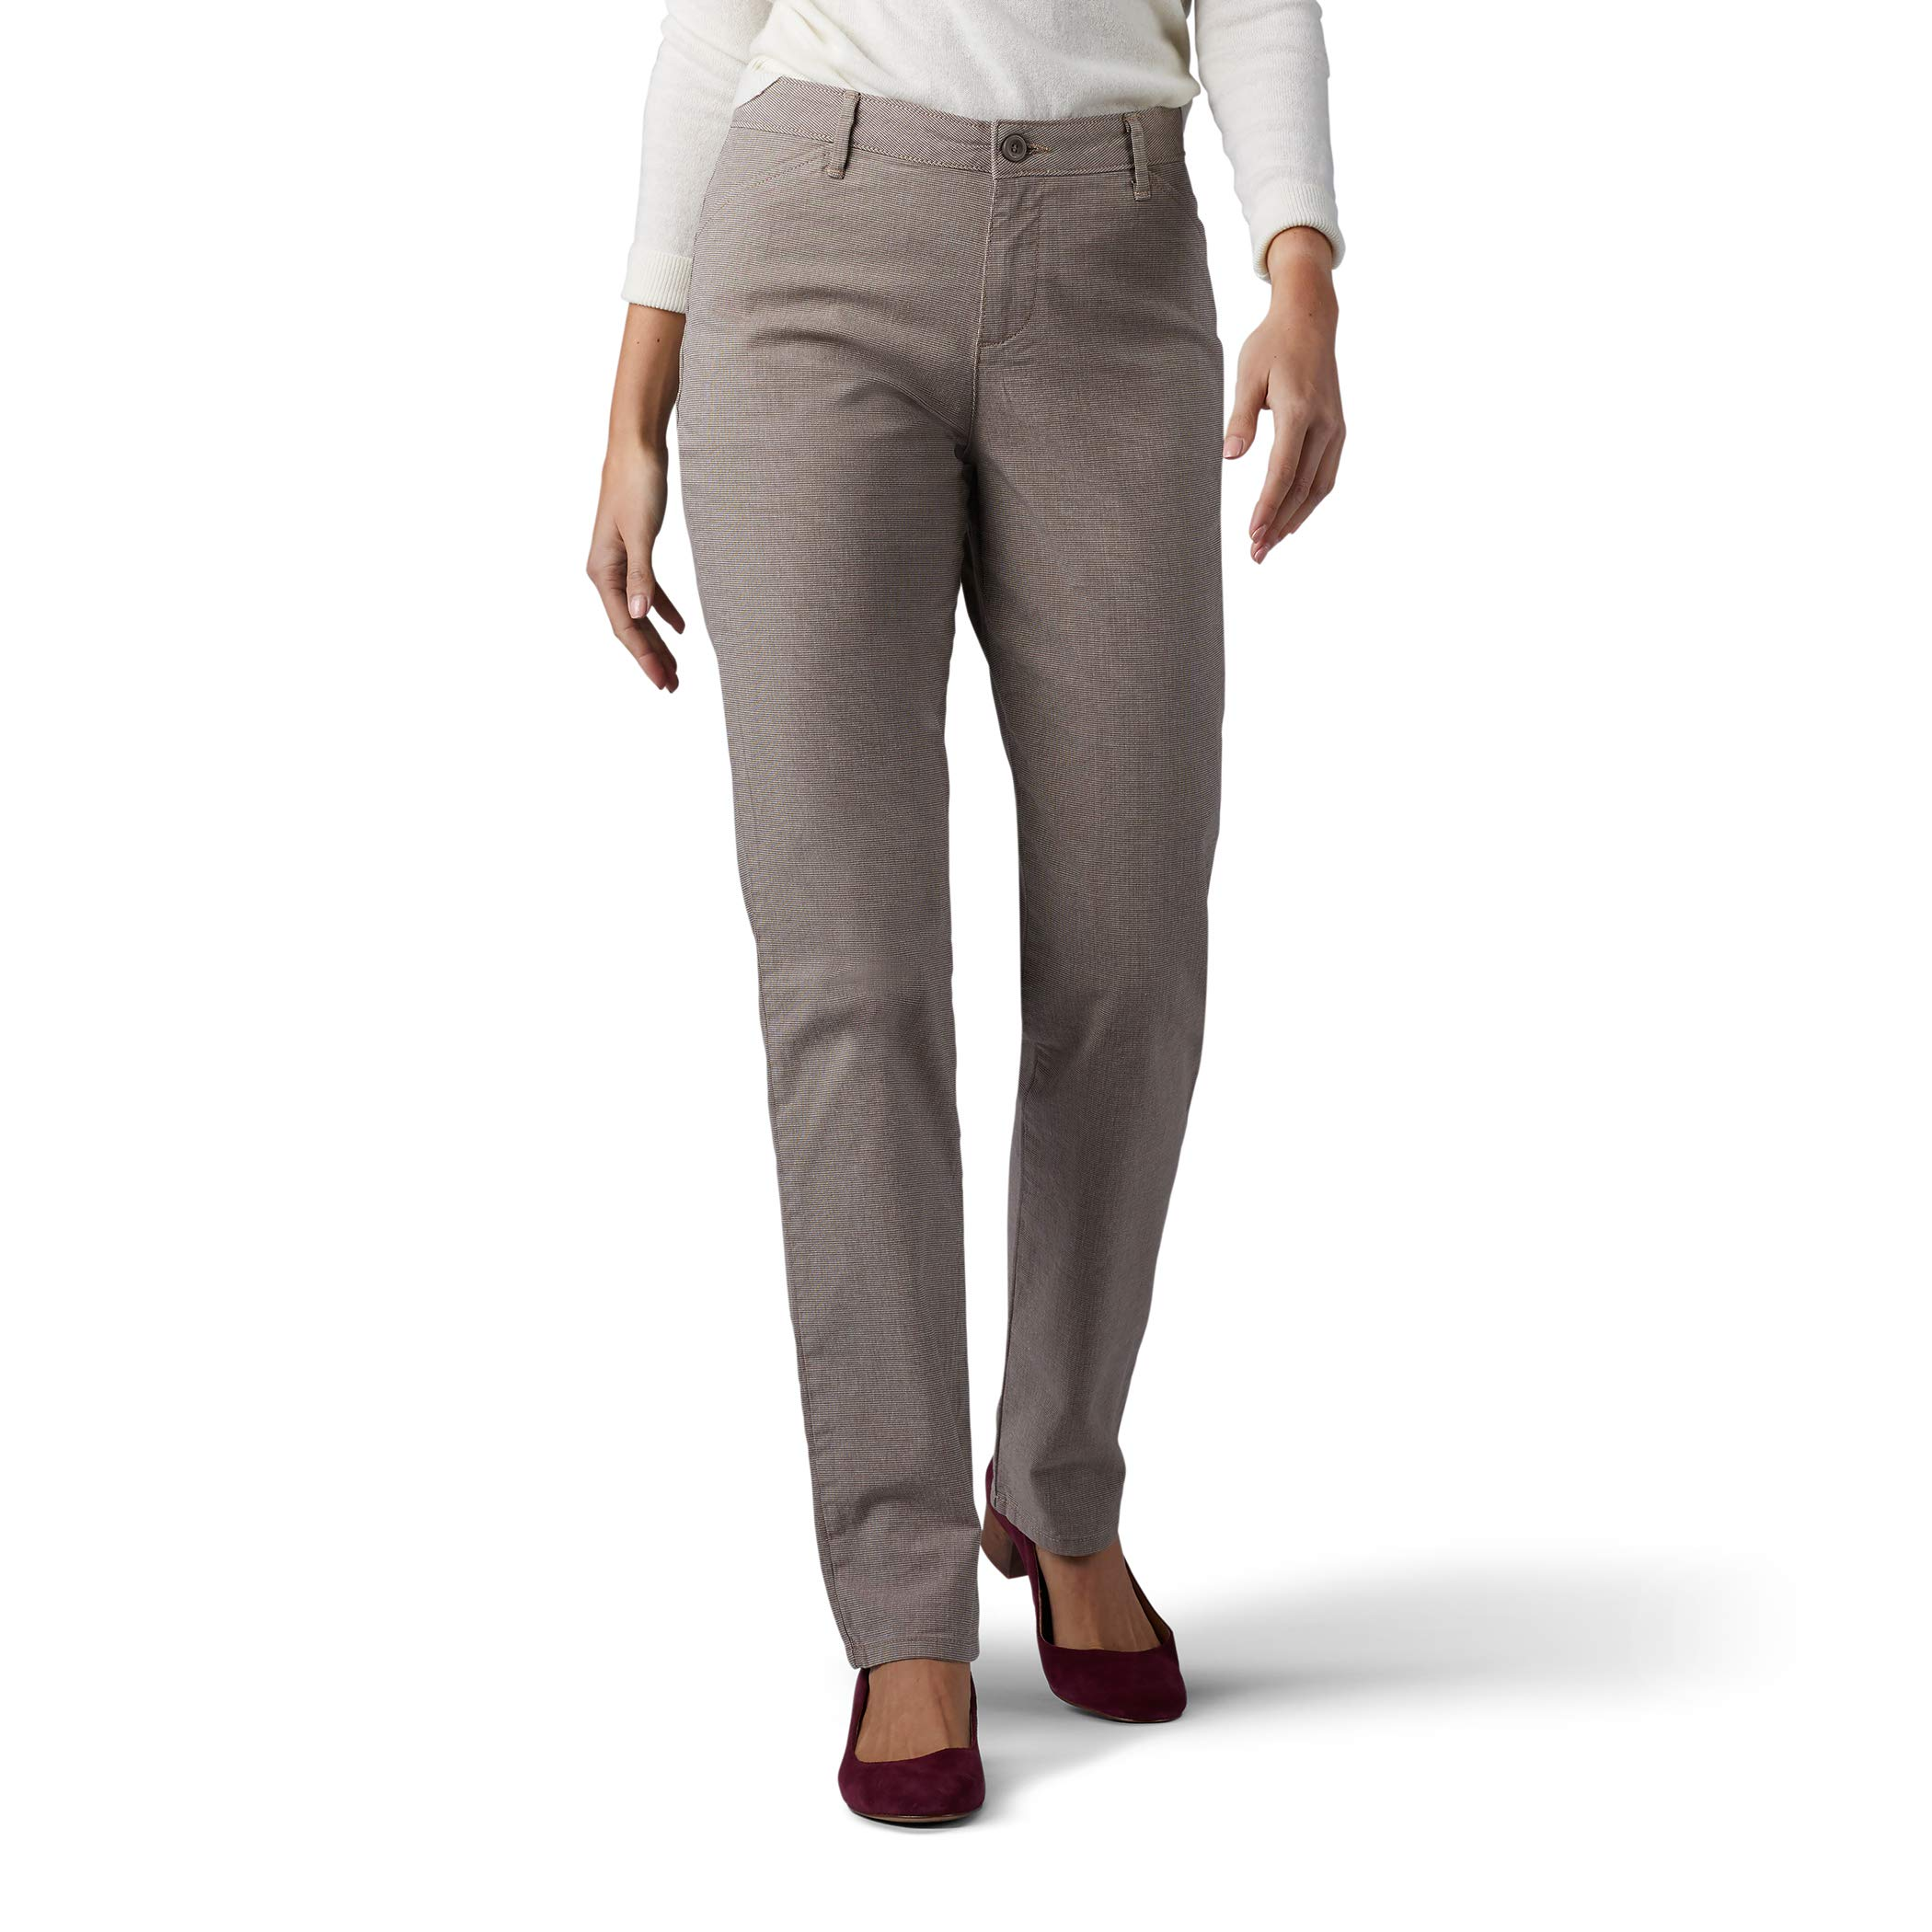 LEE Women's Relaxed Fit All Day Straight Leg Pant, deep breen micro check, 12 Short